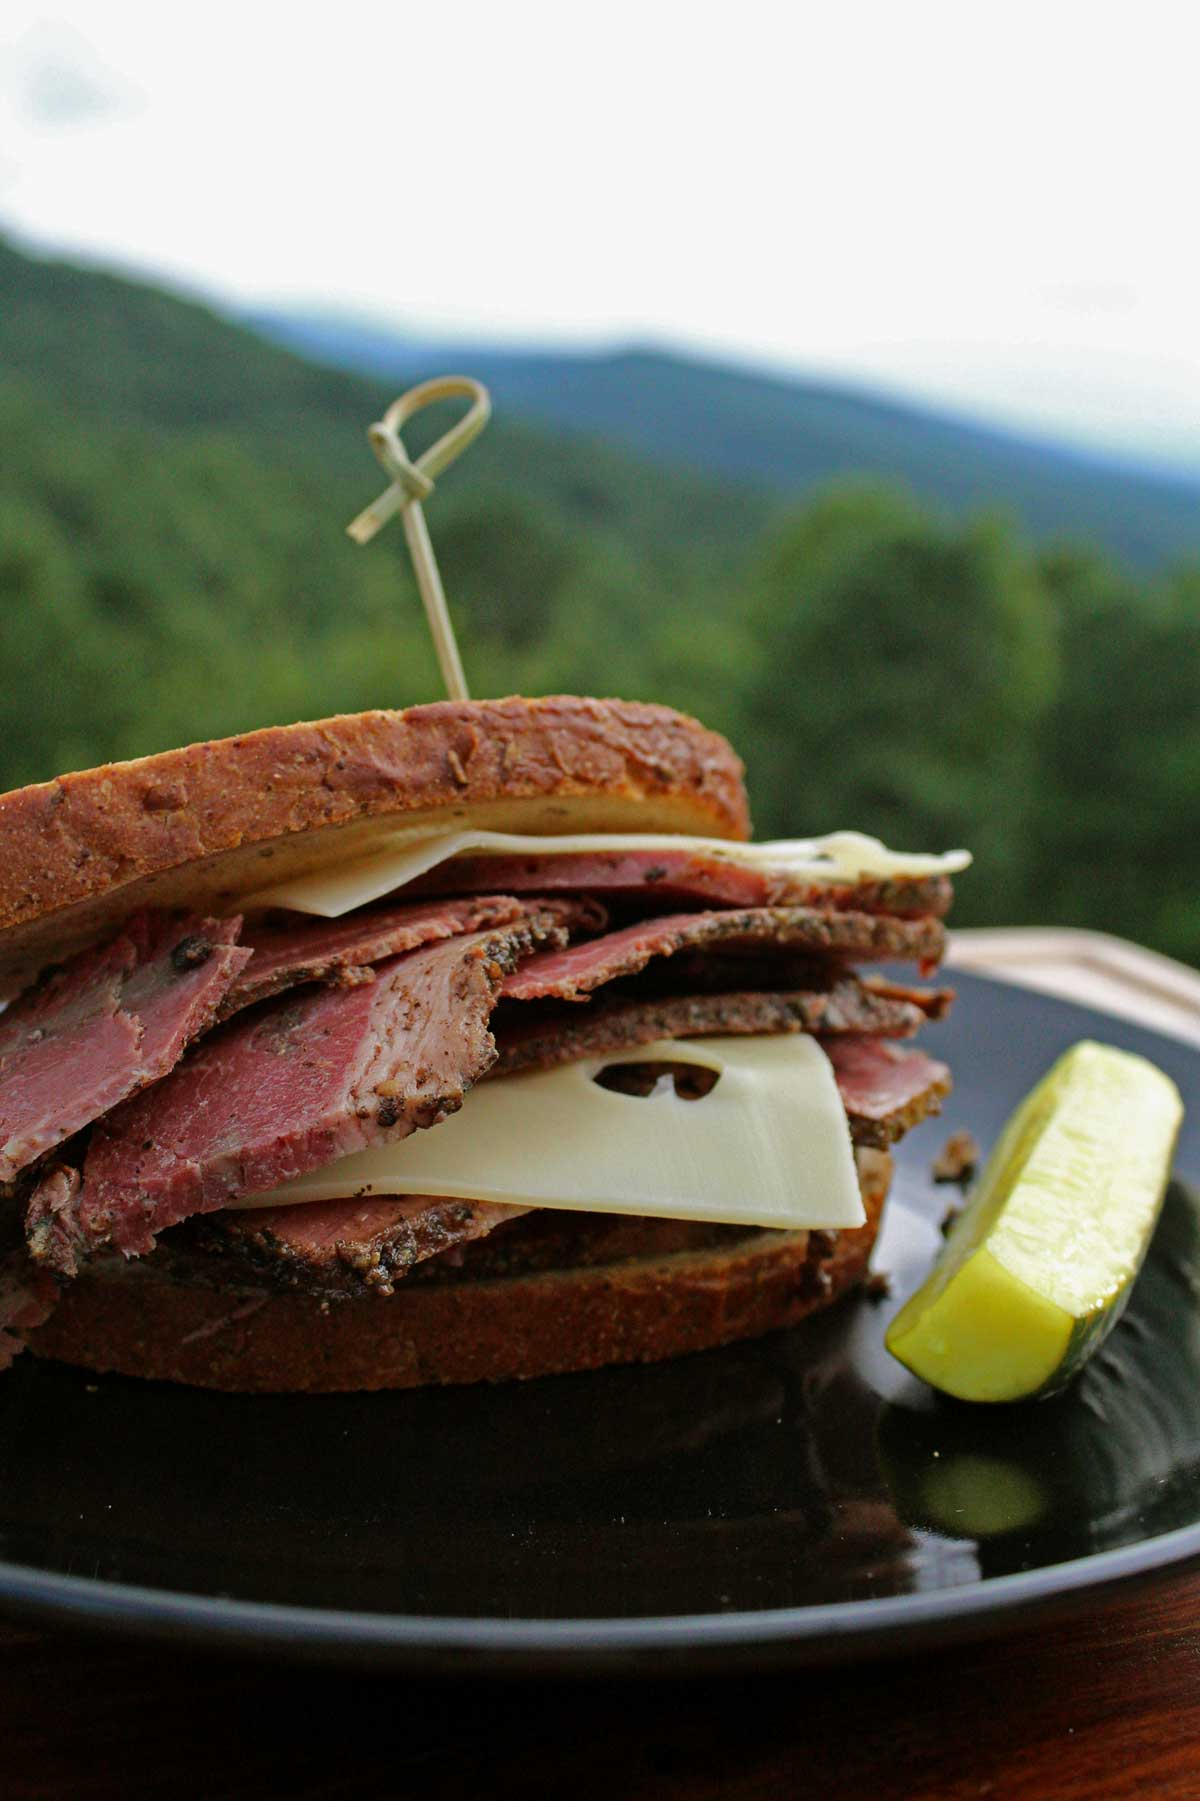 Smoked pastrami may seem like a complicated and lengthy process. Here's a step-by-step tutorial to help bring something different to your table this fall!